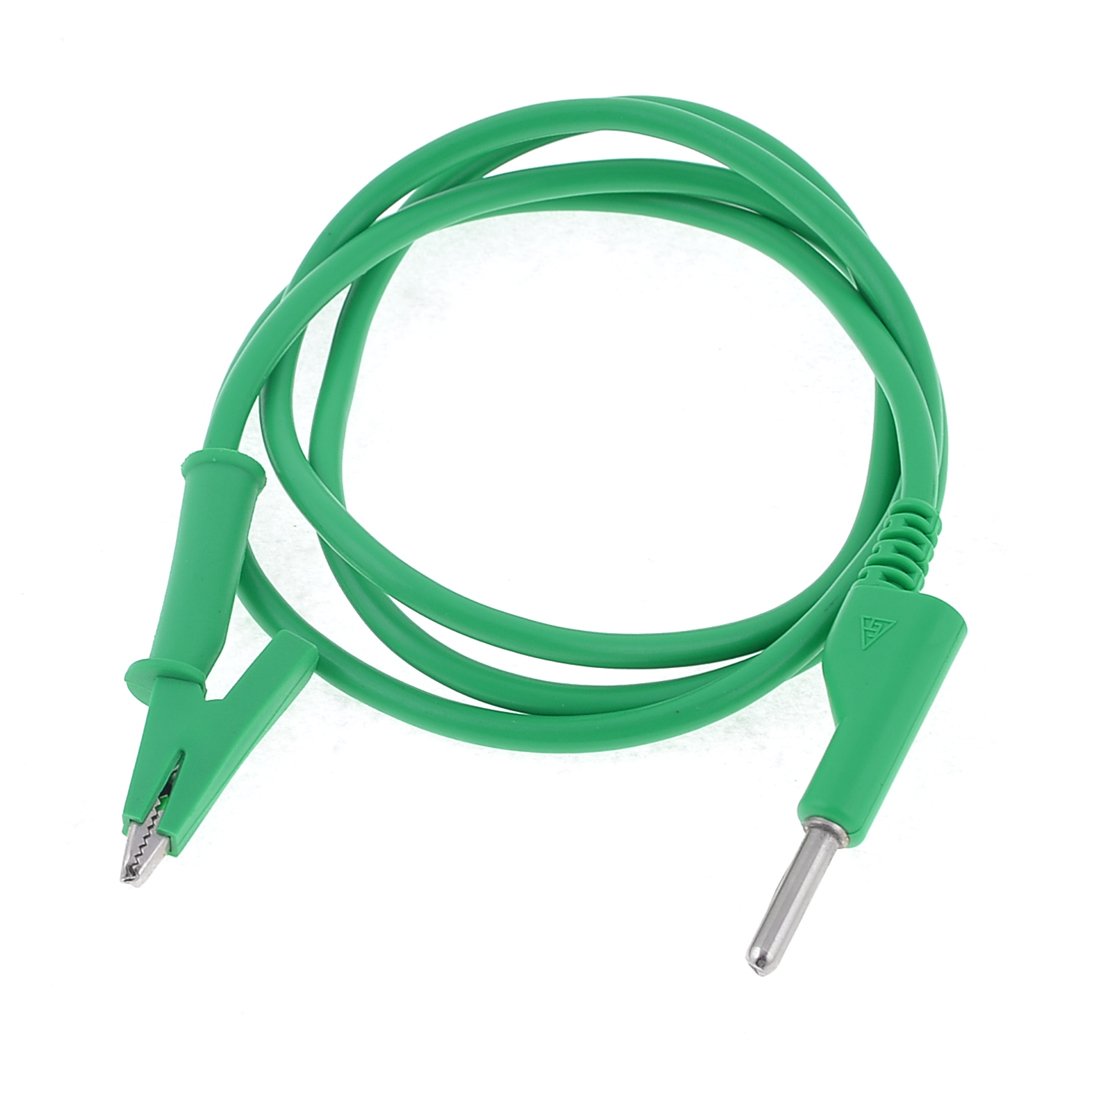 Green PVC Banana Connector to Alligator Test Probe Cable Clamp 1M